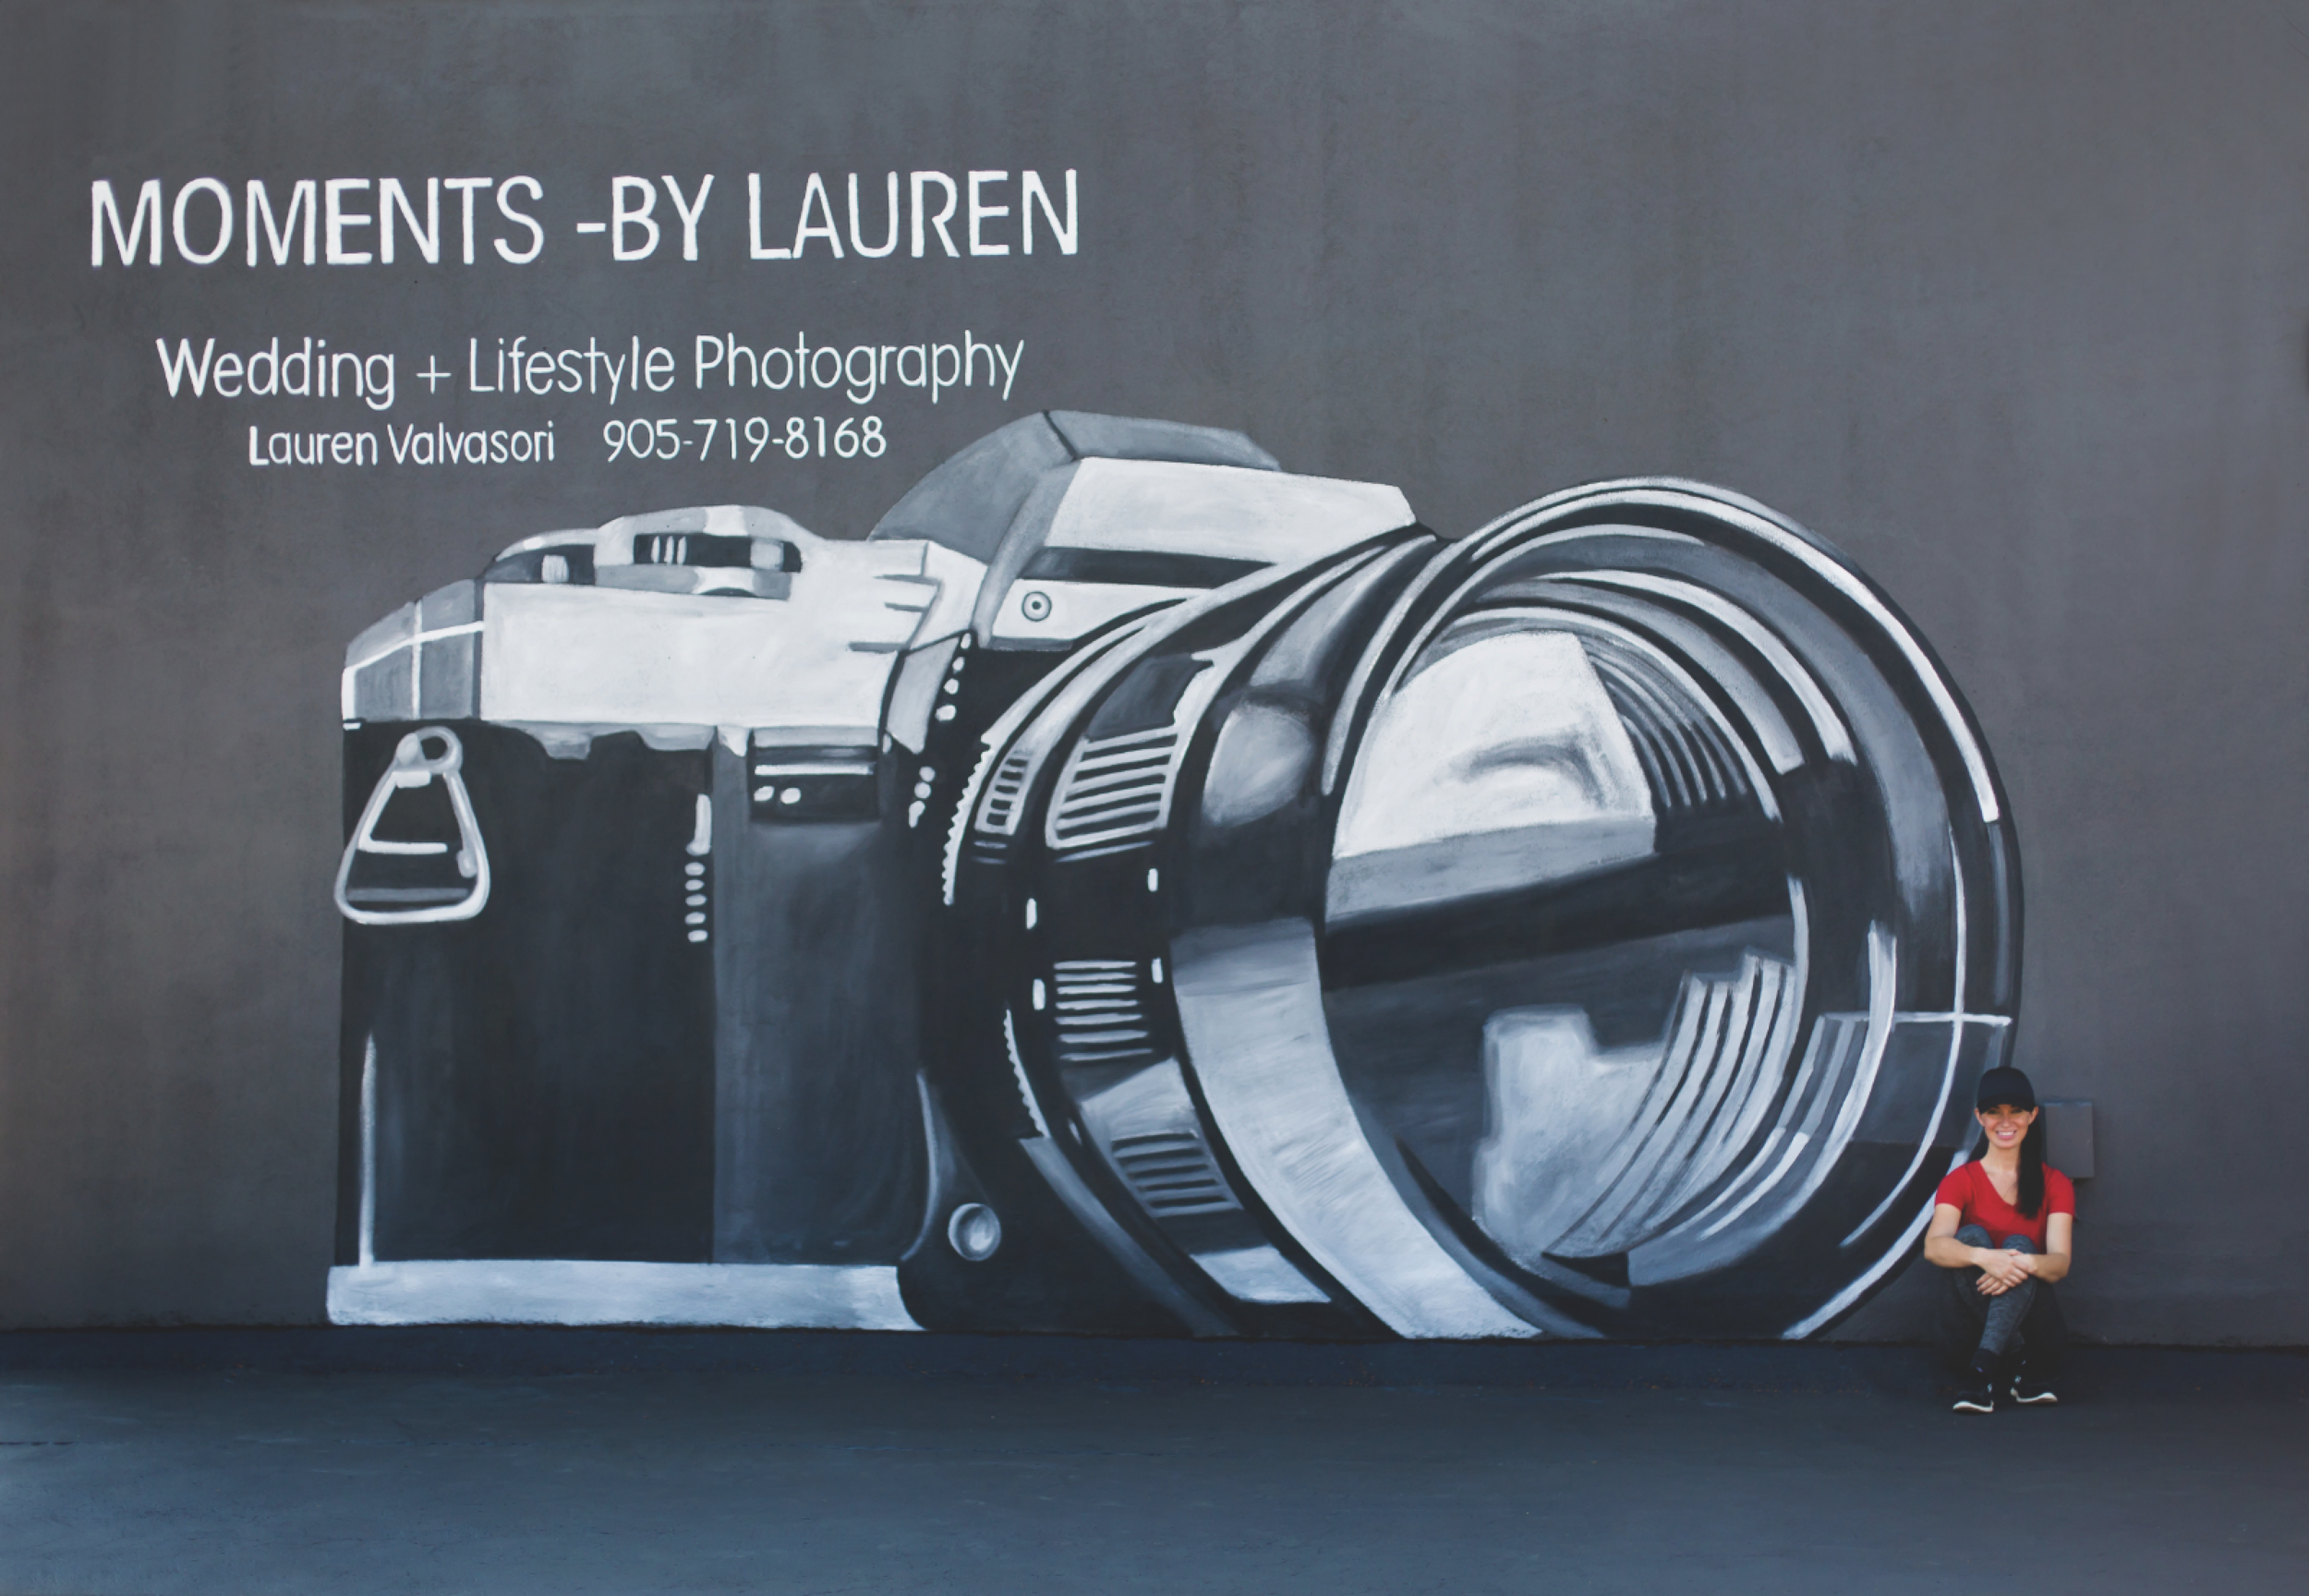 Moments-by-Lauren-Camera-Mural-Claire-Hall-Design-Photo-8-2.png